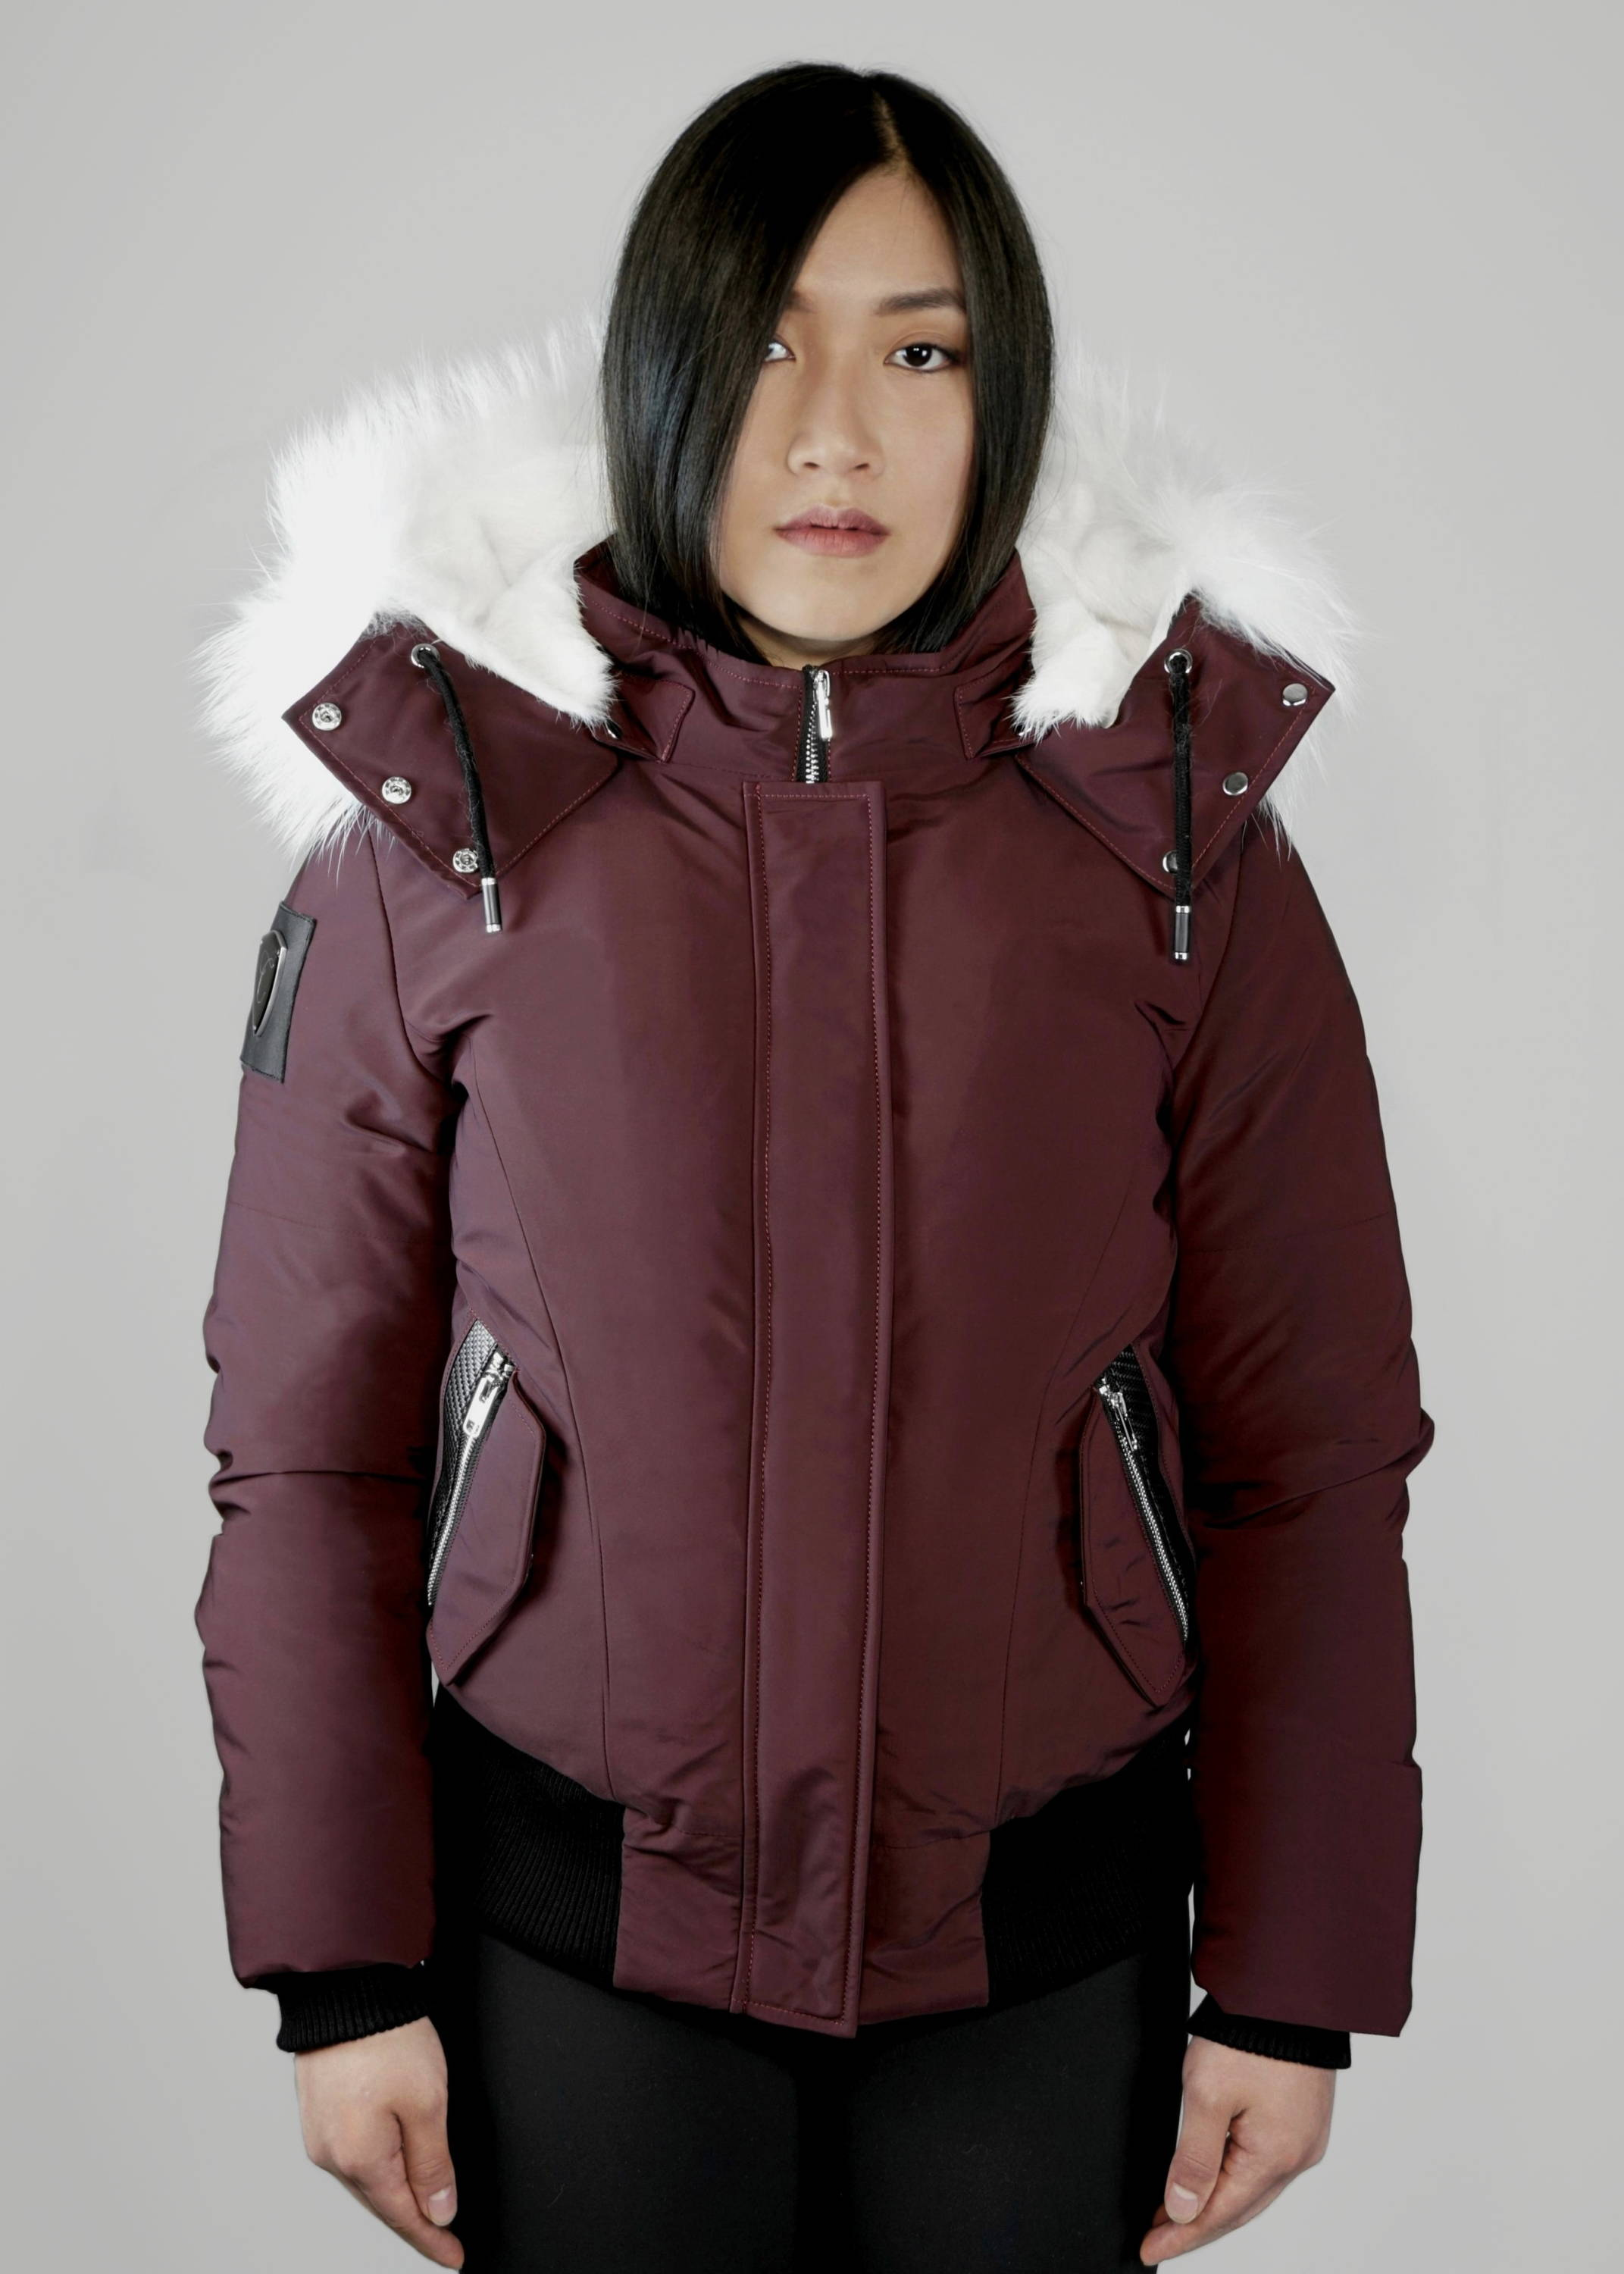 Carbonesque womens celeste goose down bomber